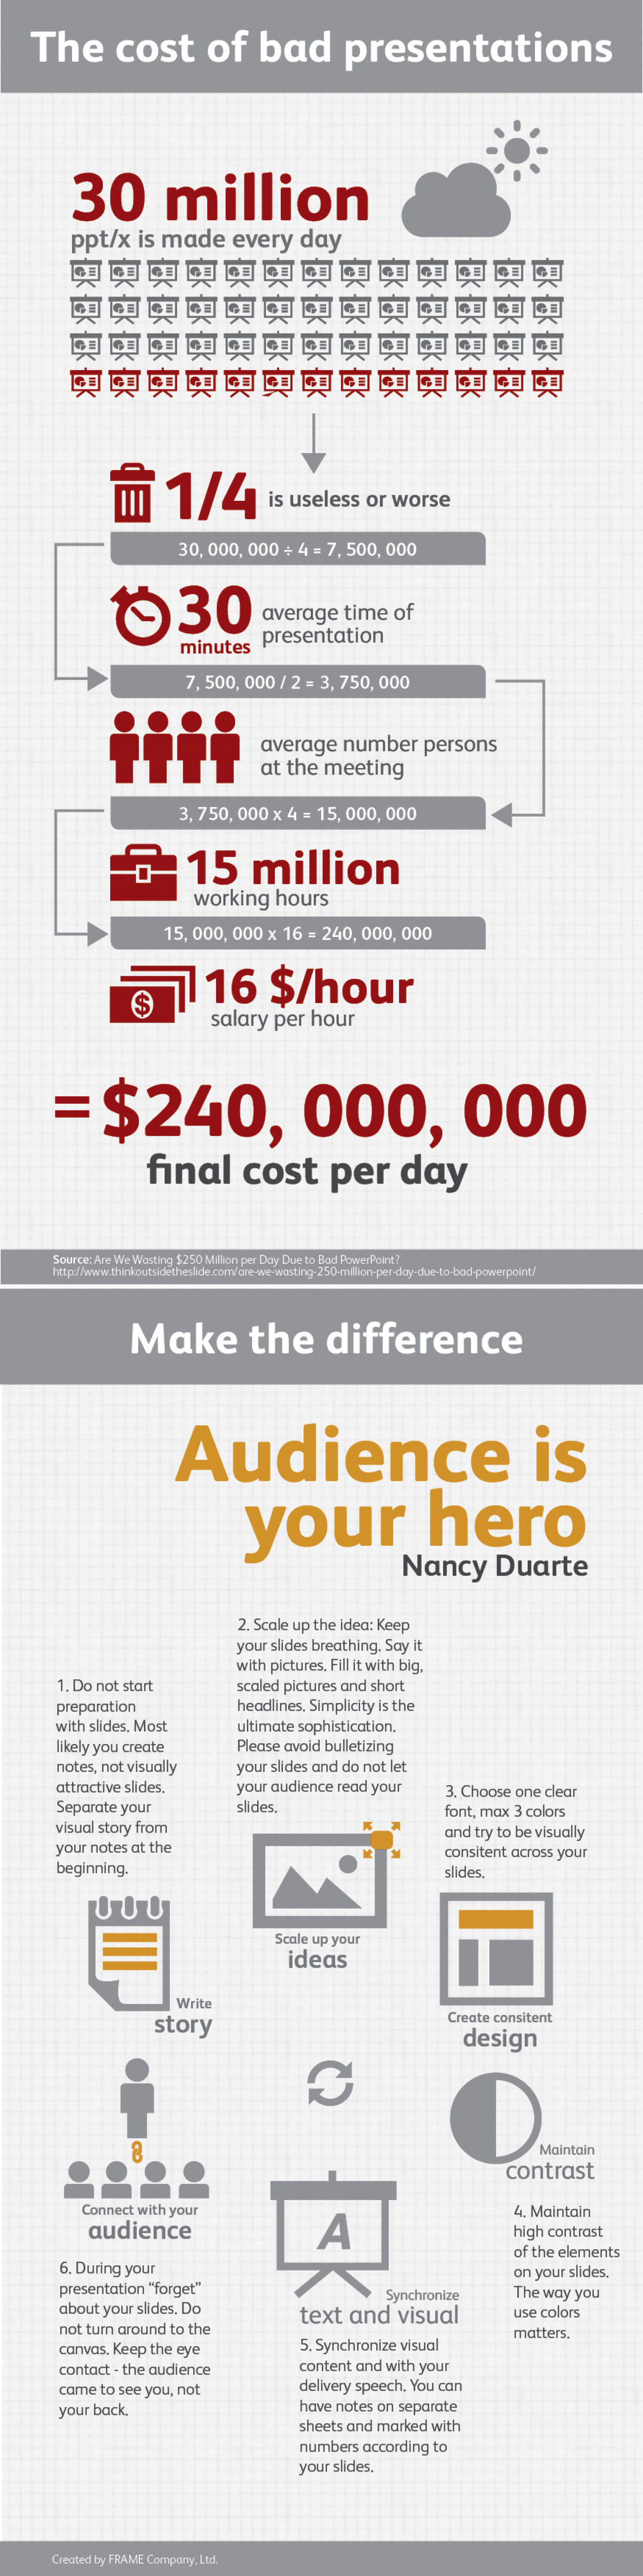 The cost of bad presentations and how to make the difference Infographic